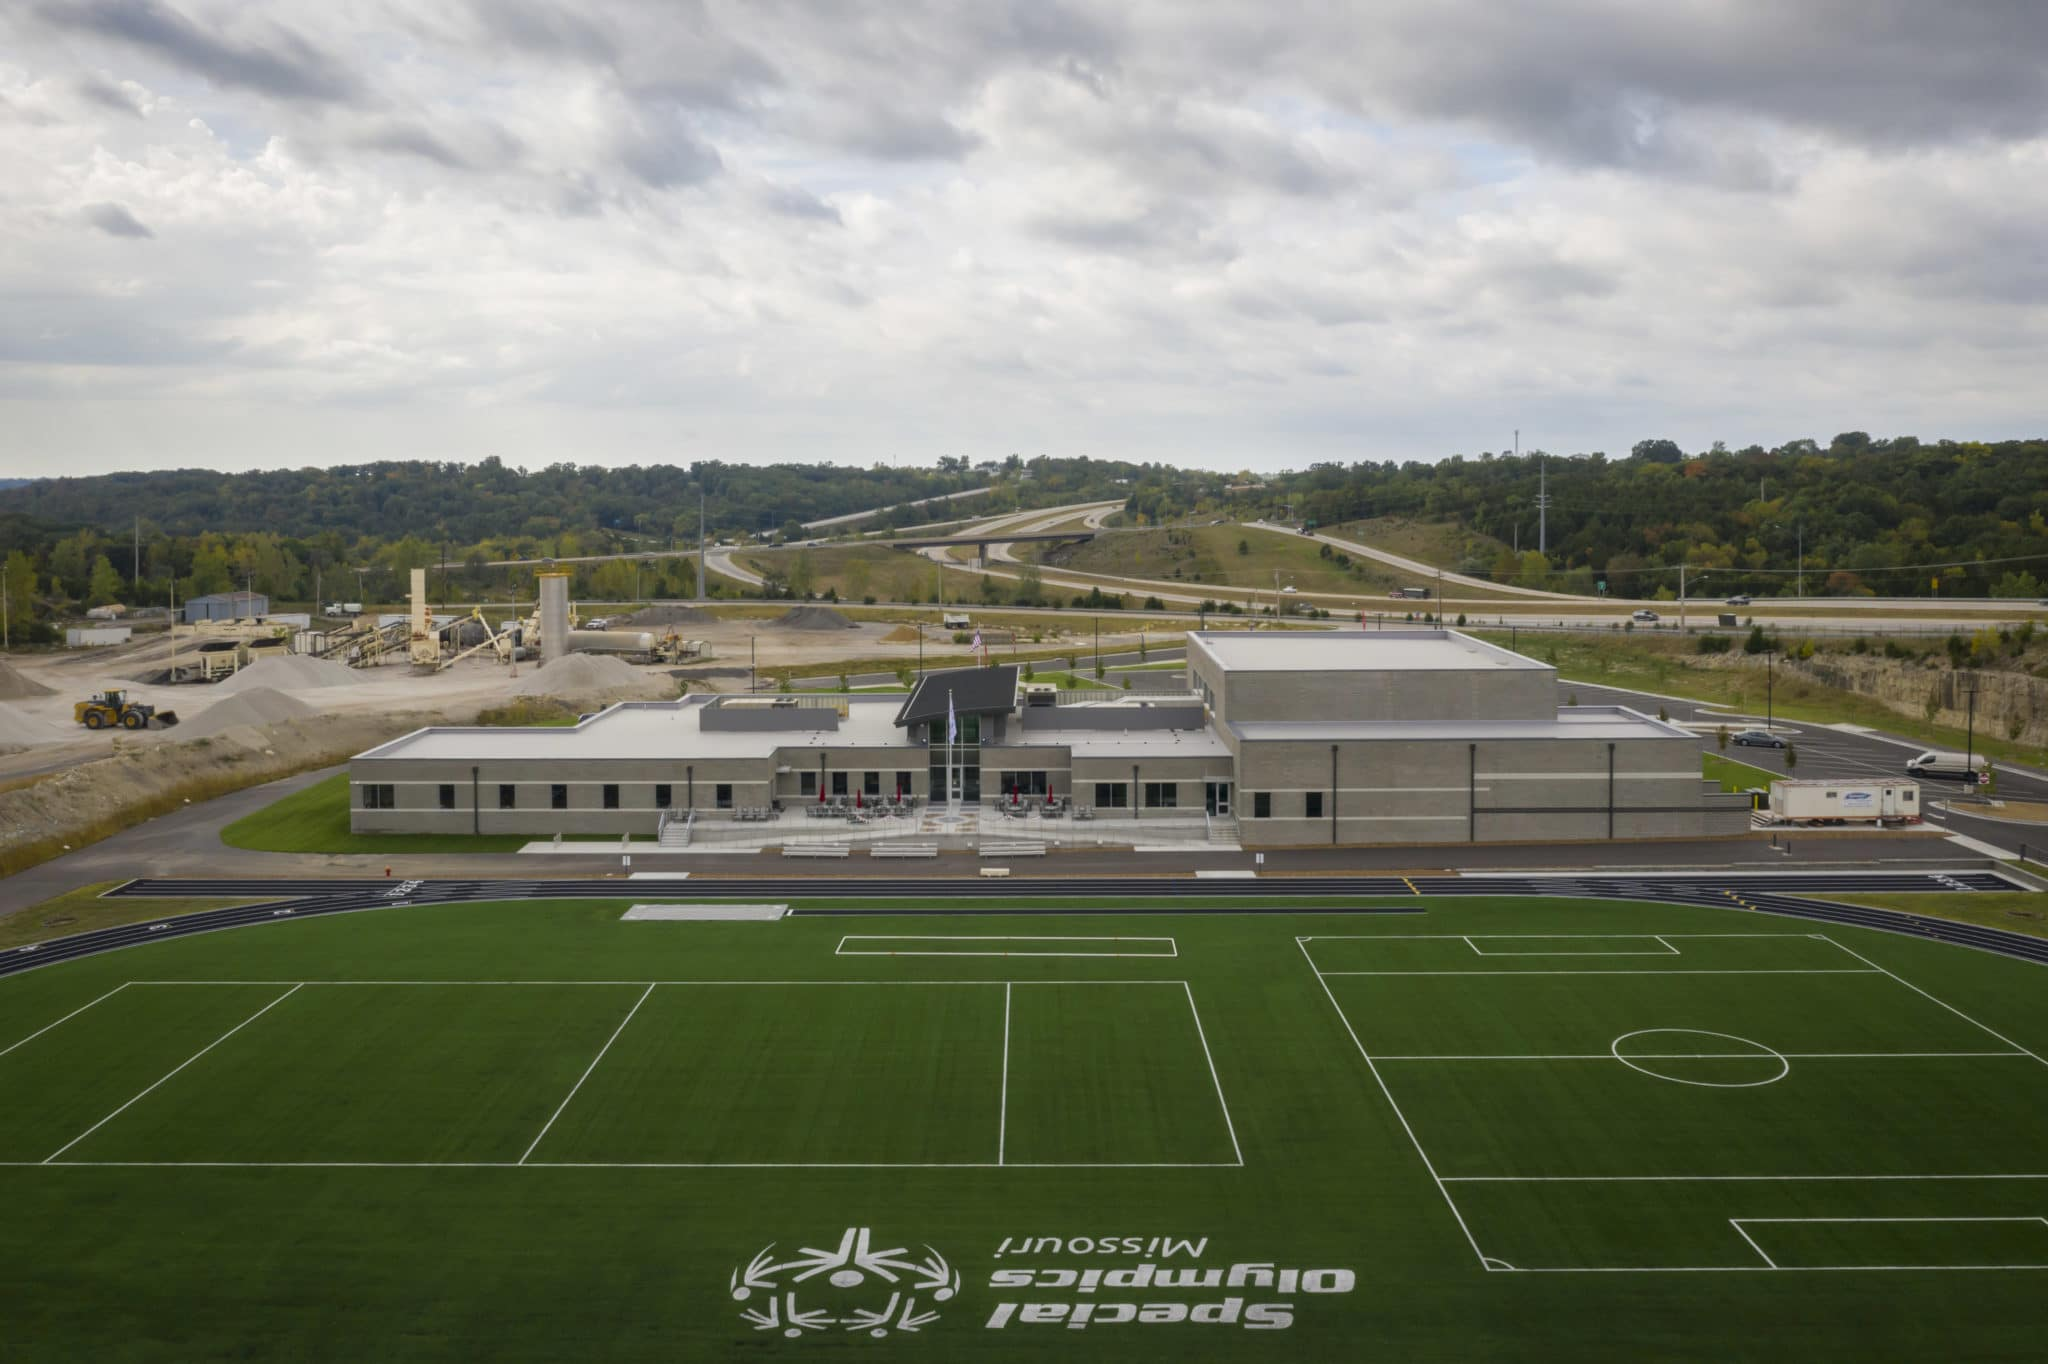 An aerial photo of the Training for Life Campus showing the turf field, track, and building